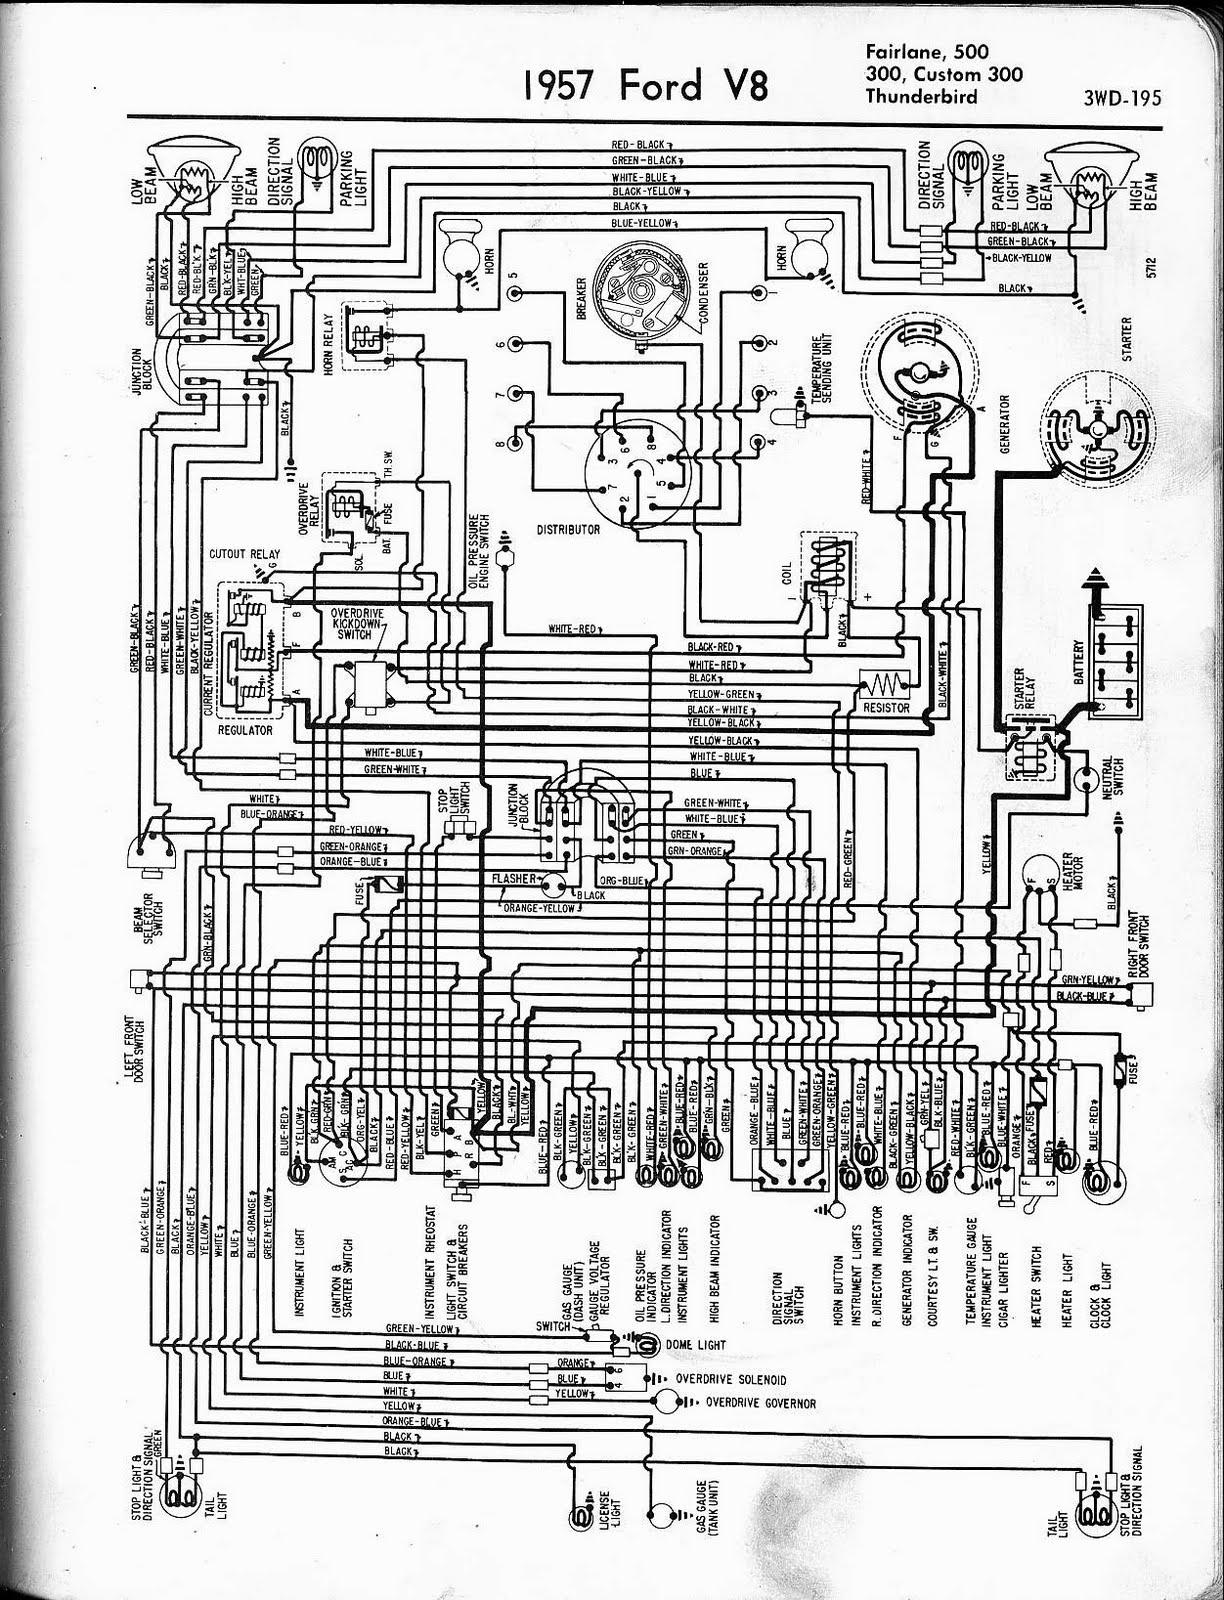 free auto wiring diagram 1957 ford v8 fairlane custom300 2006 ford crown victoria fuse box diagram [ 1224 x 1600 Pixel ]